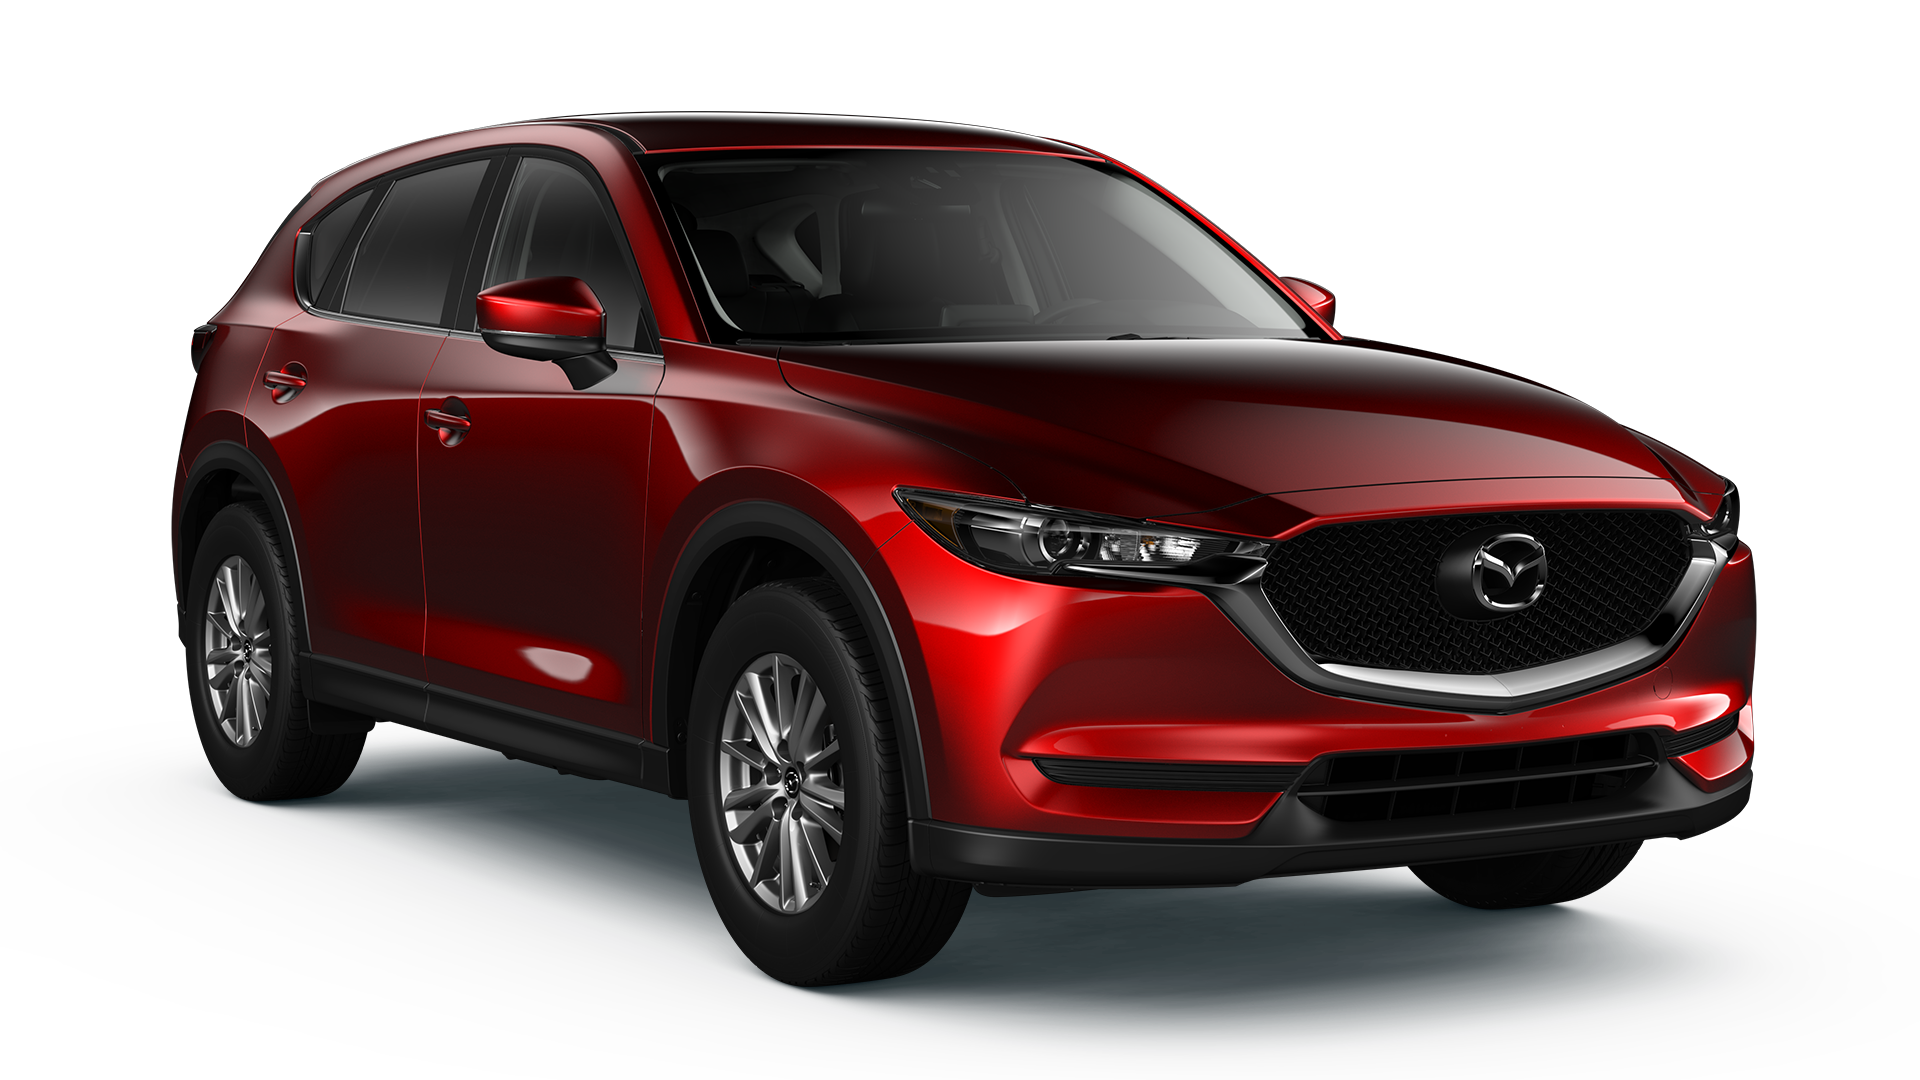 2018 Mazda Suv Price - New Car Release Date and Review ...